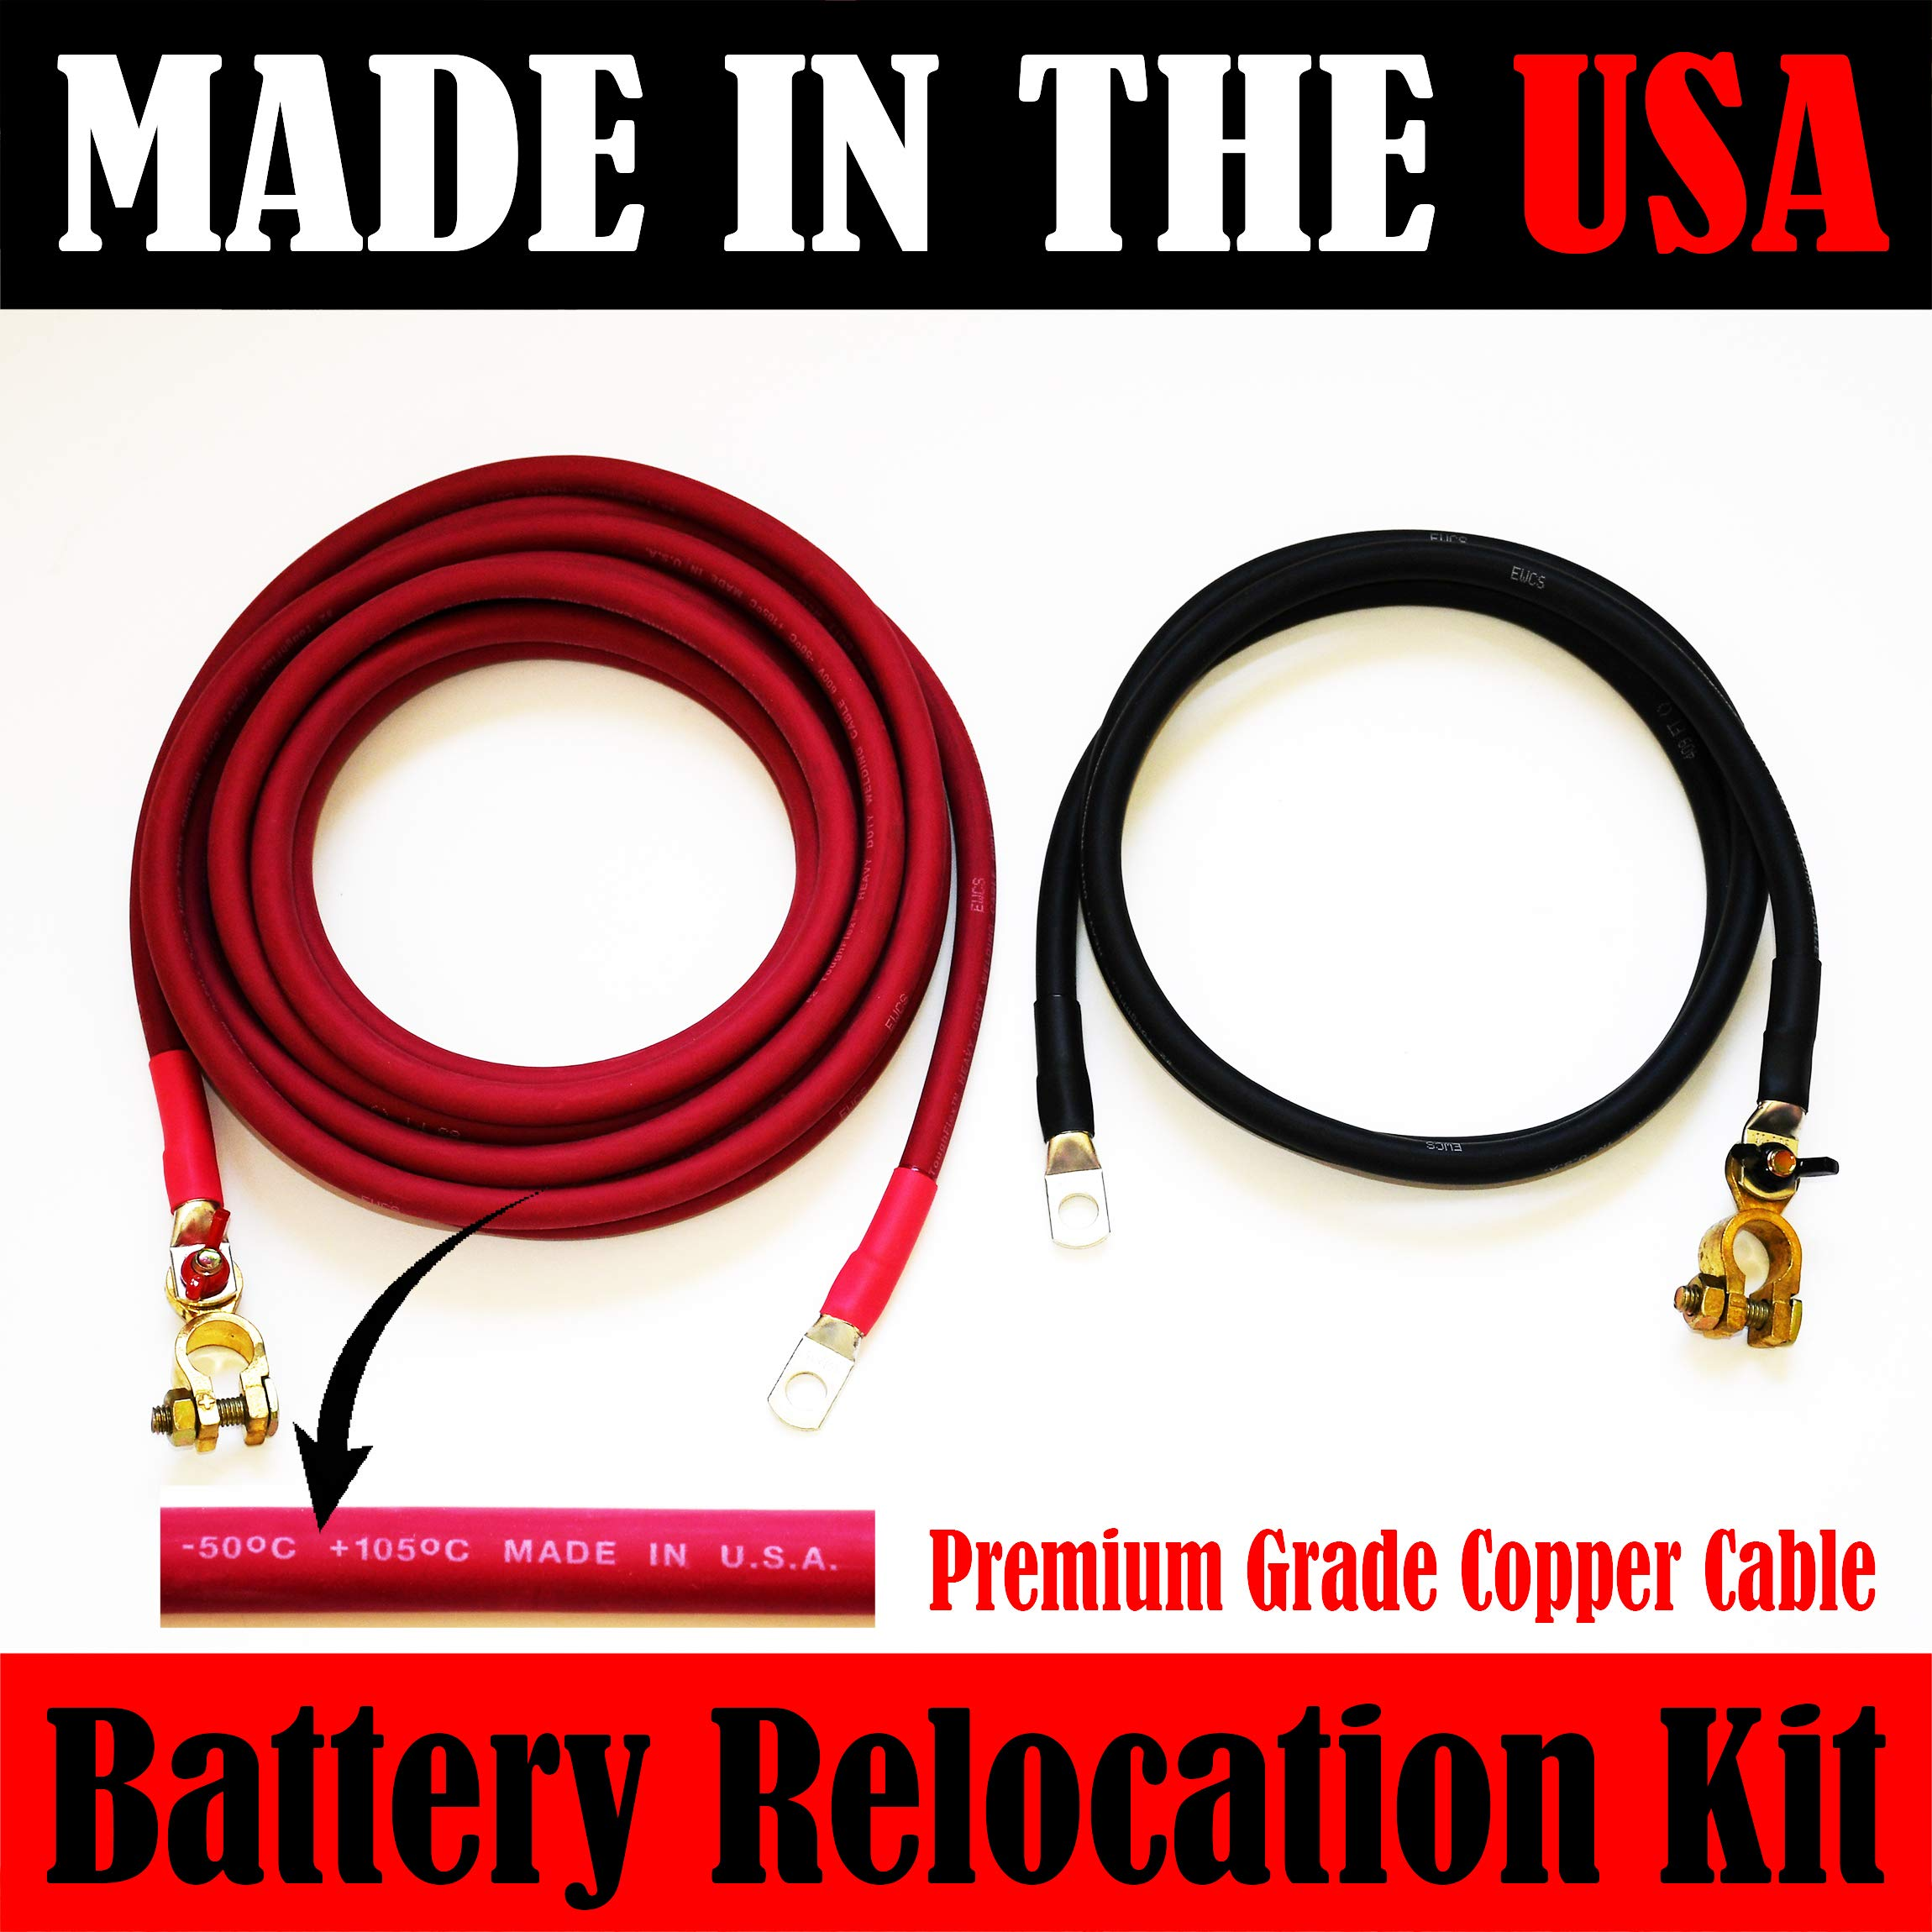 MADE IN USA SOLID COPPER Battery Relocation Kit, 2 AWG Cable, Top Post 20 FT RED 5 FT BLACK by PAKA TOOLS